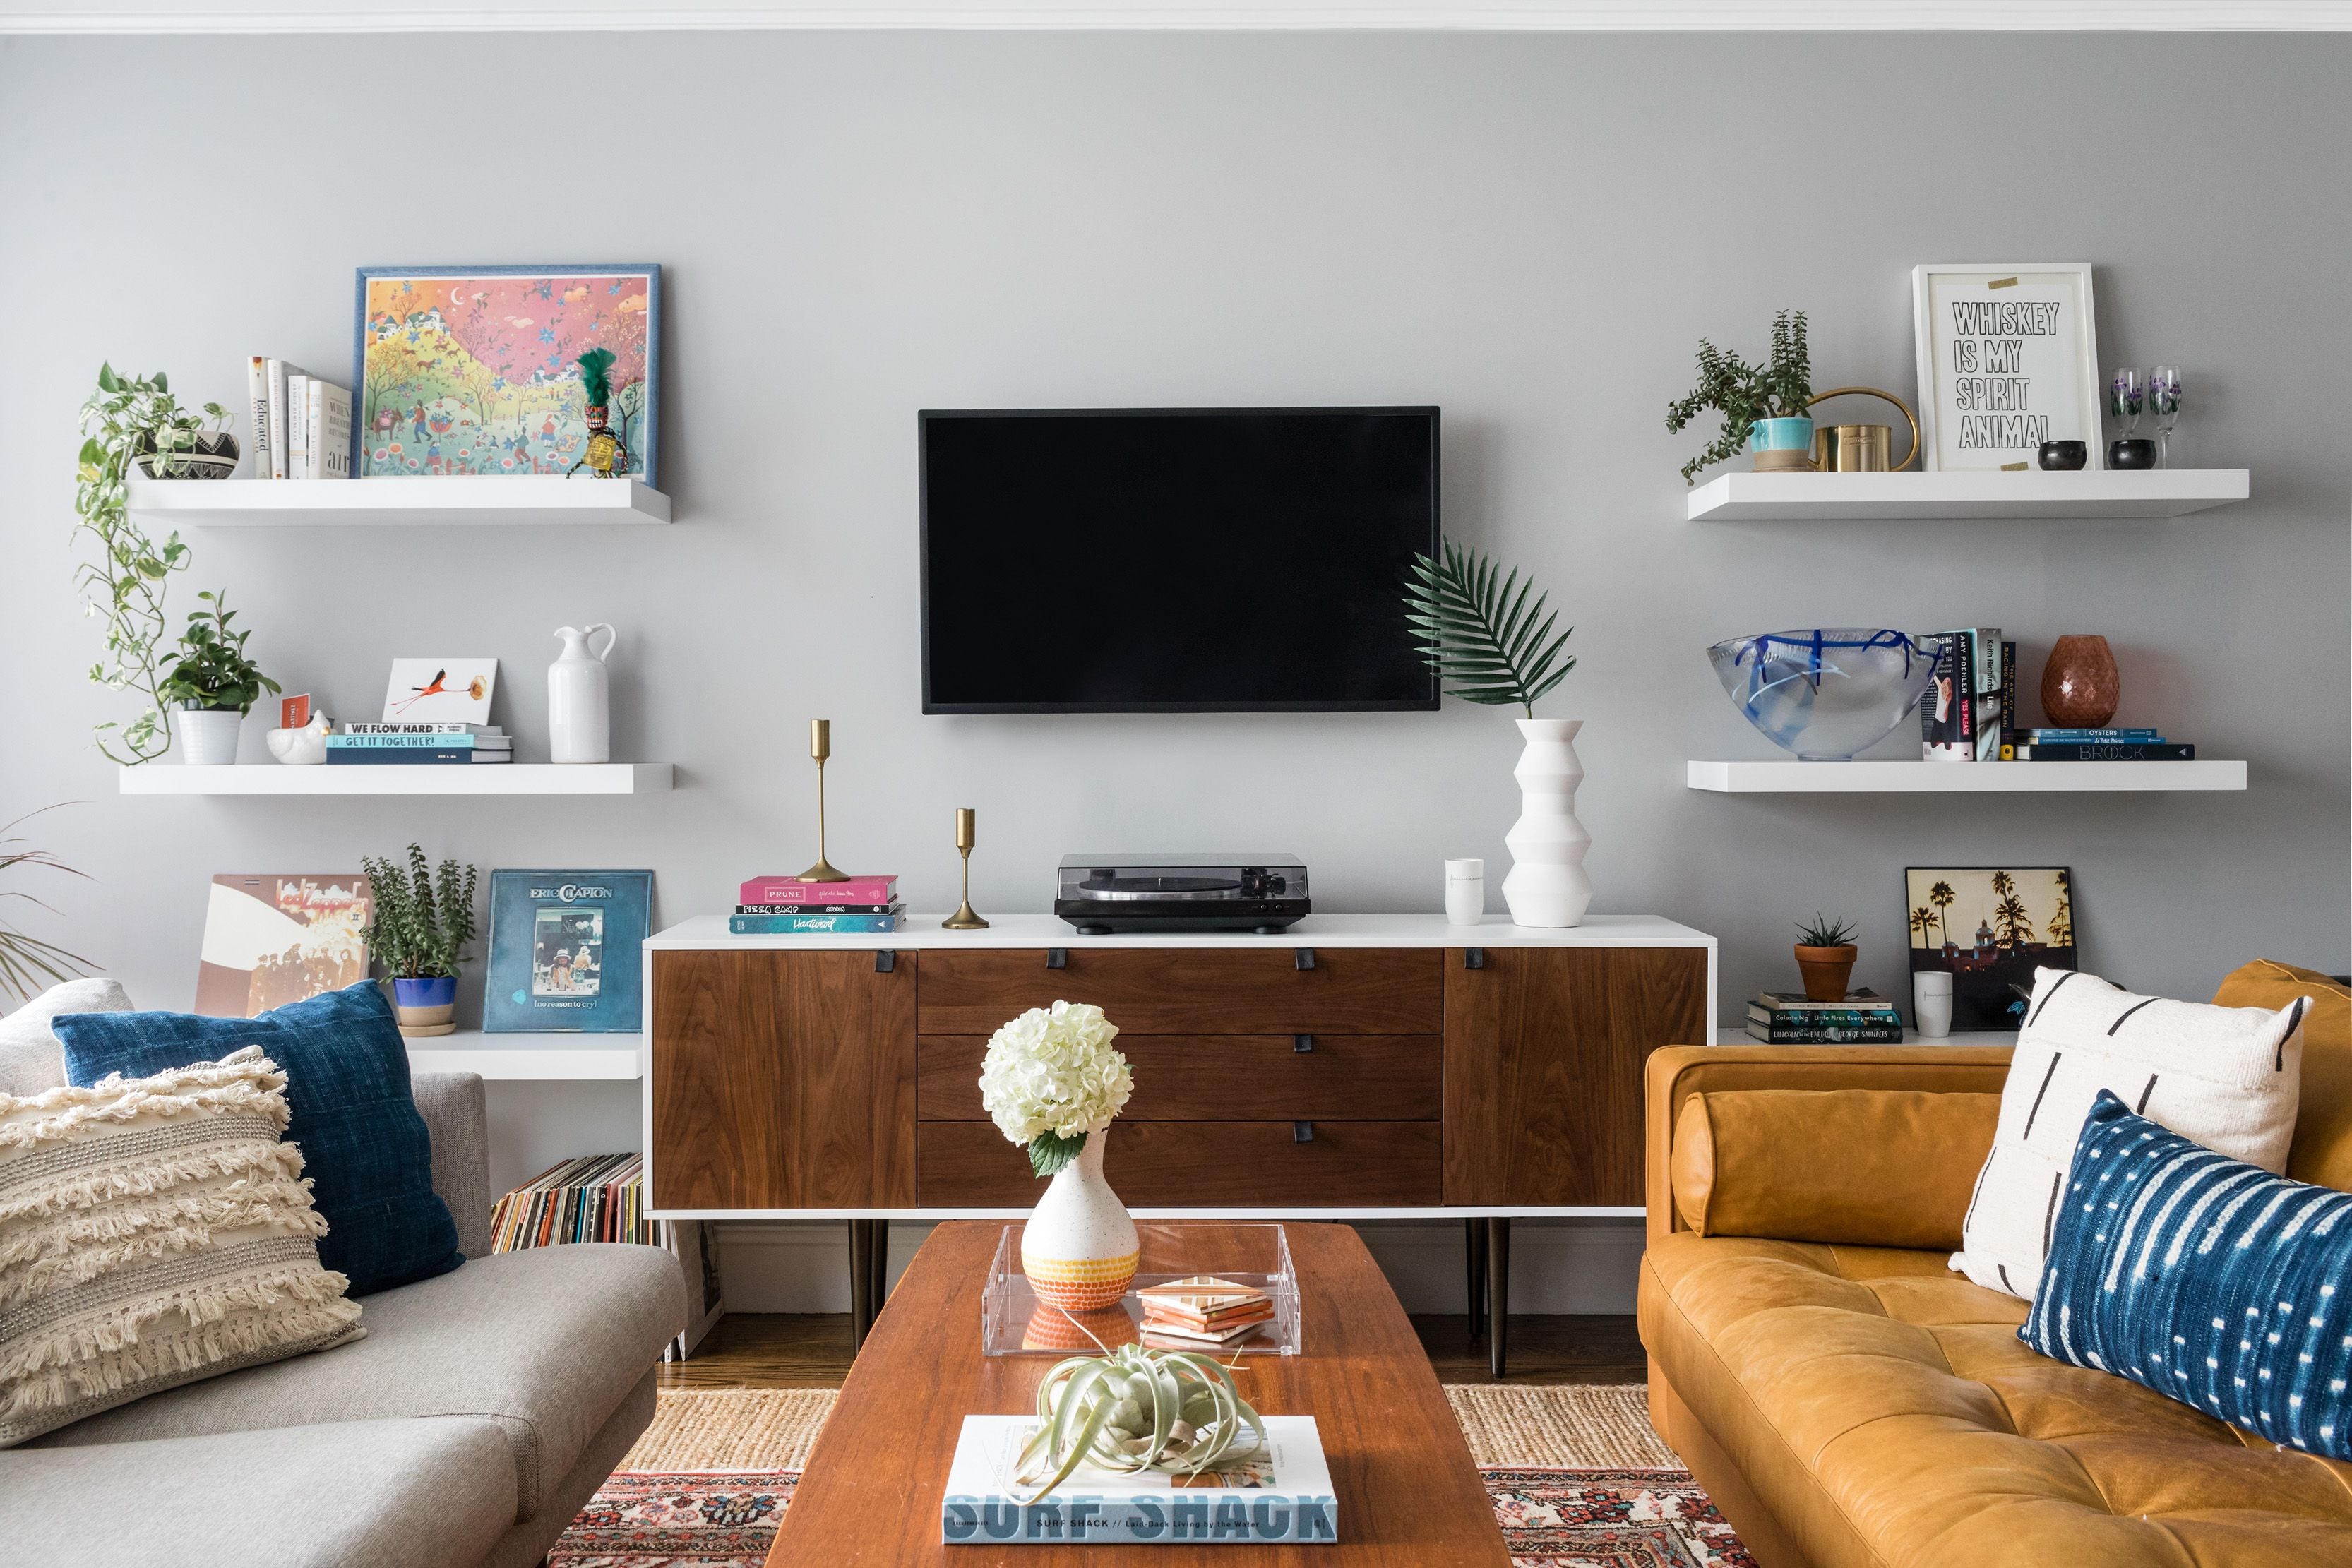 Modern Bohemian Living Room In Boston, MA With @homepolish. Photography By  Joyelle West. #livingroom #homedecor #midcenturymodern #midcentury ...